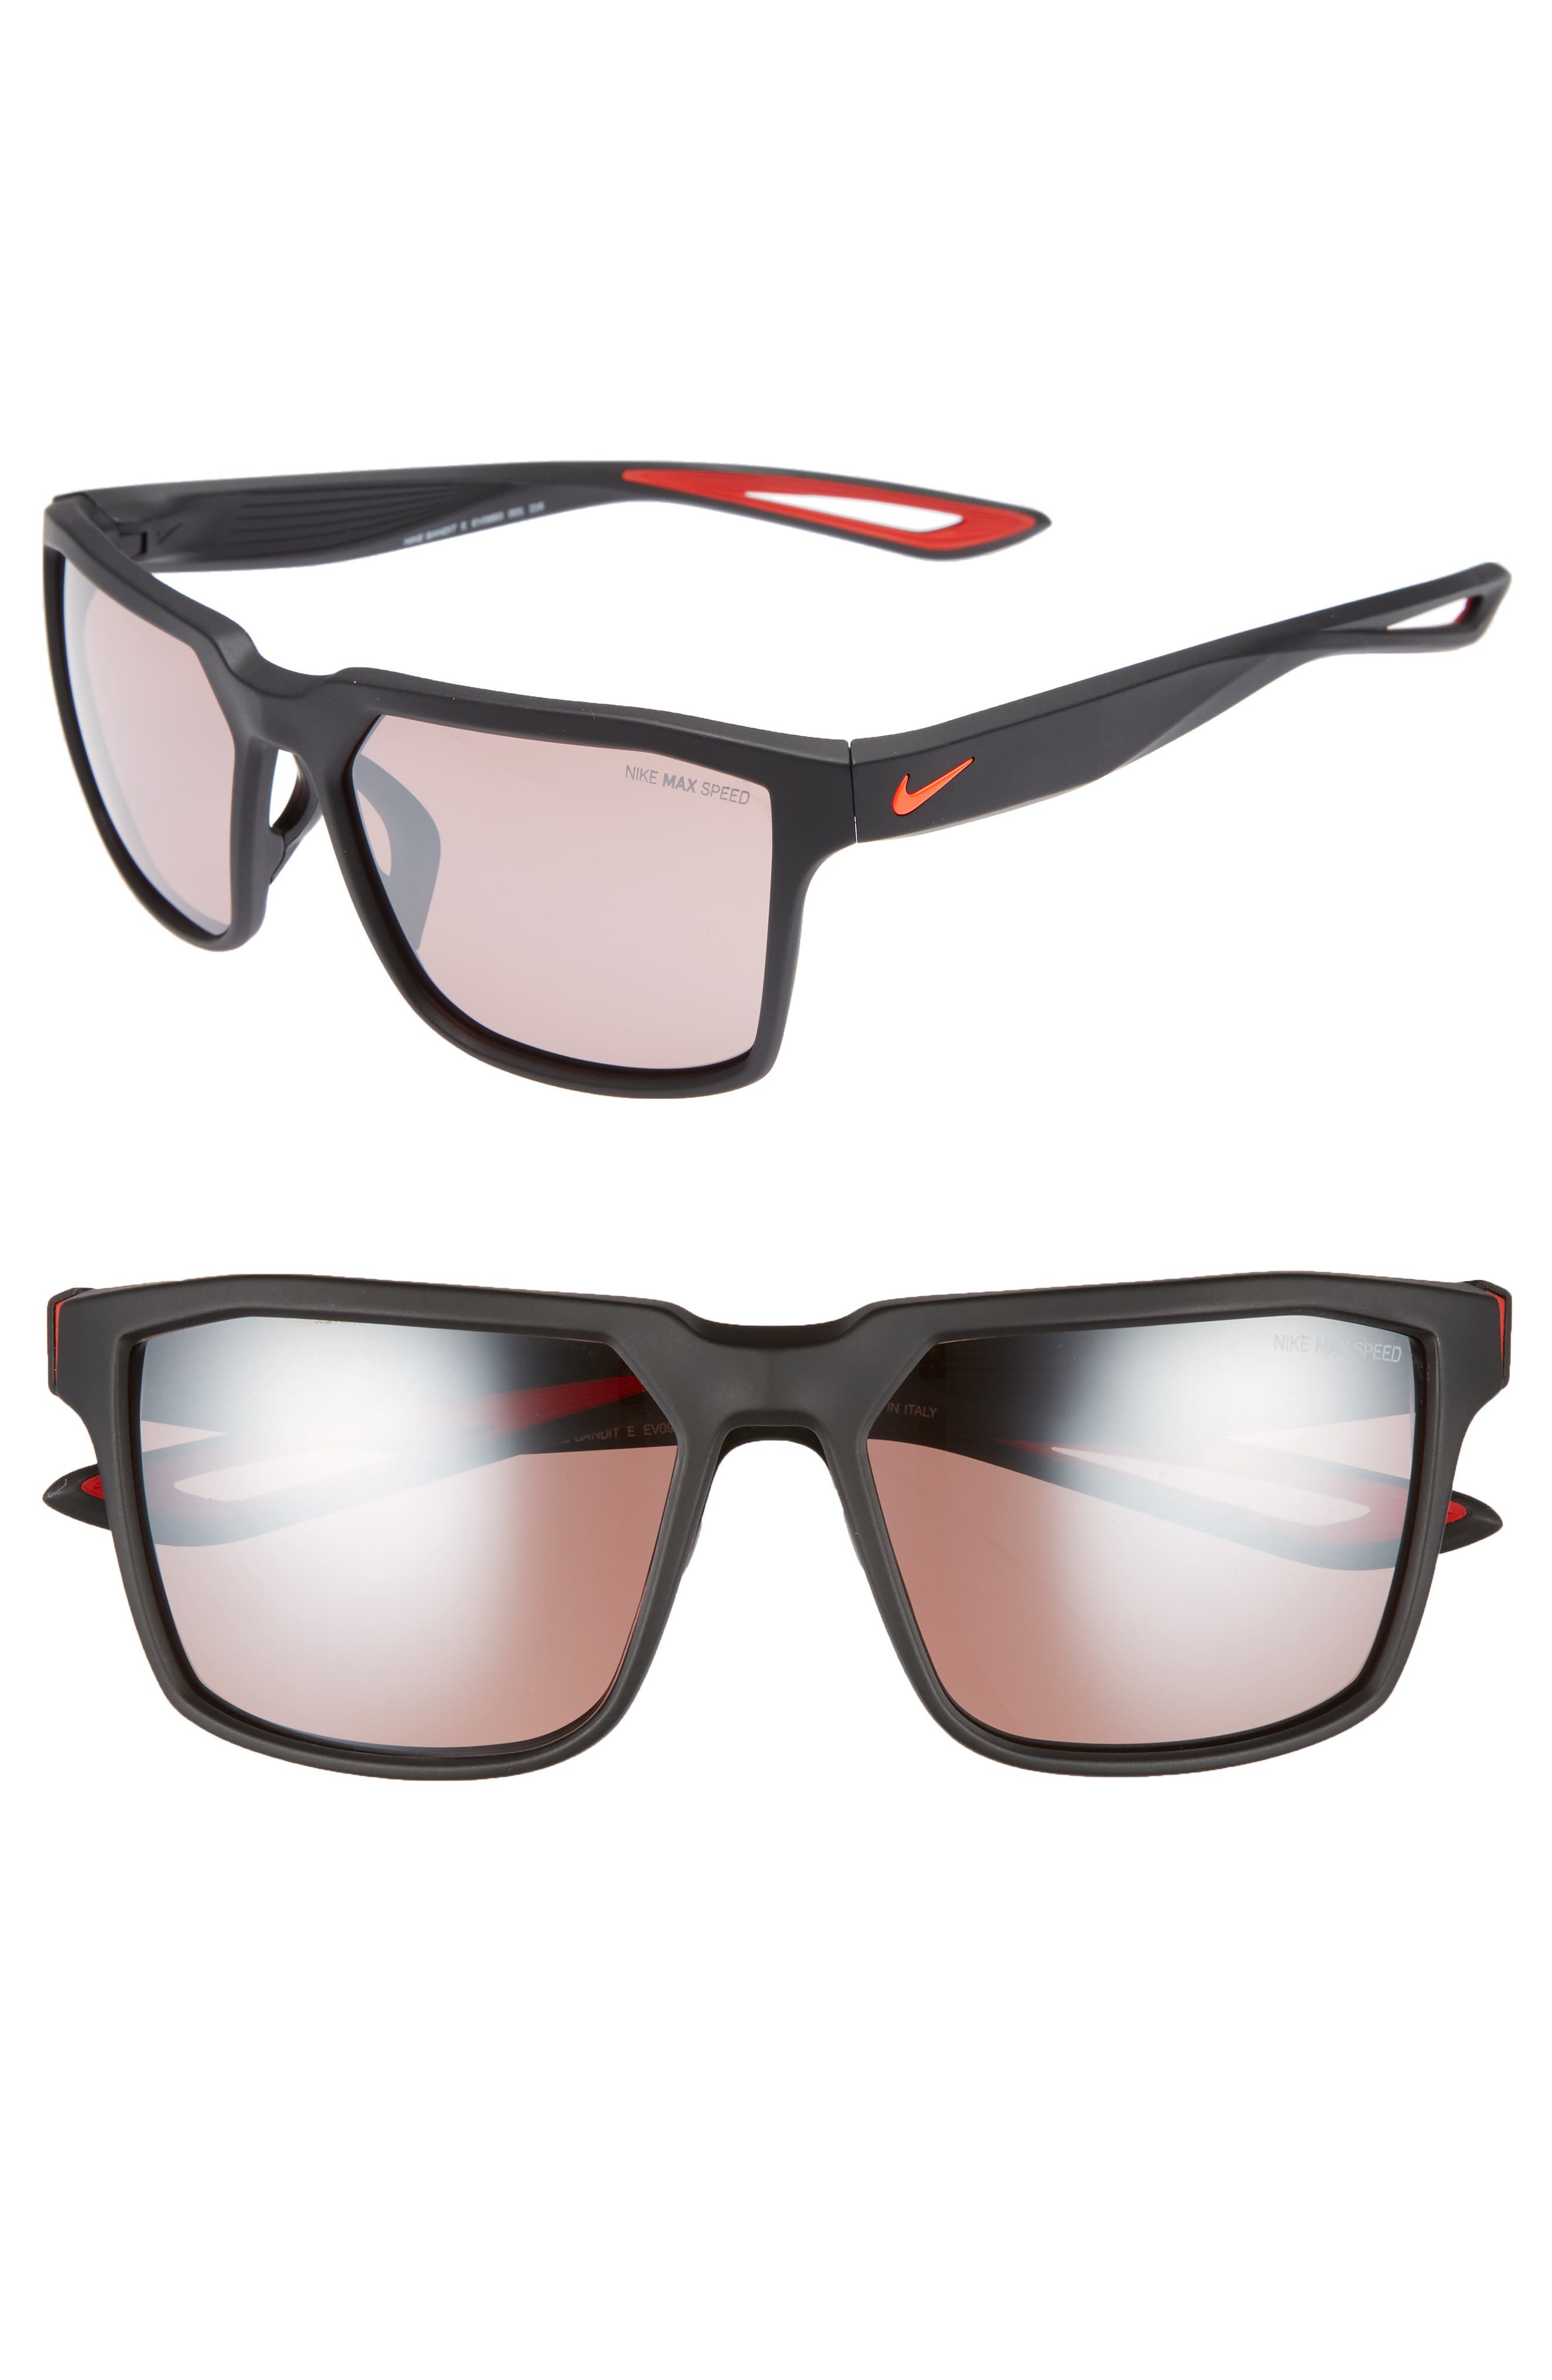 Bandit E 59mm Running Sunglasses,                         Main,                         color, Matte Black/ Bright Crimson